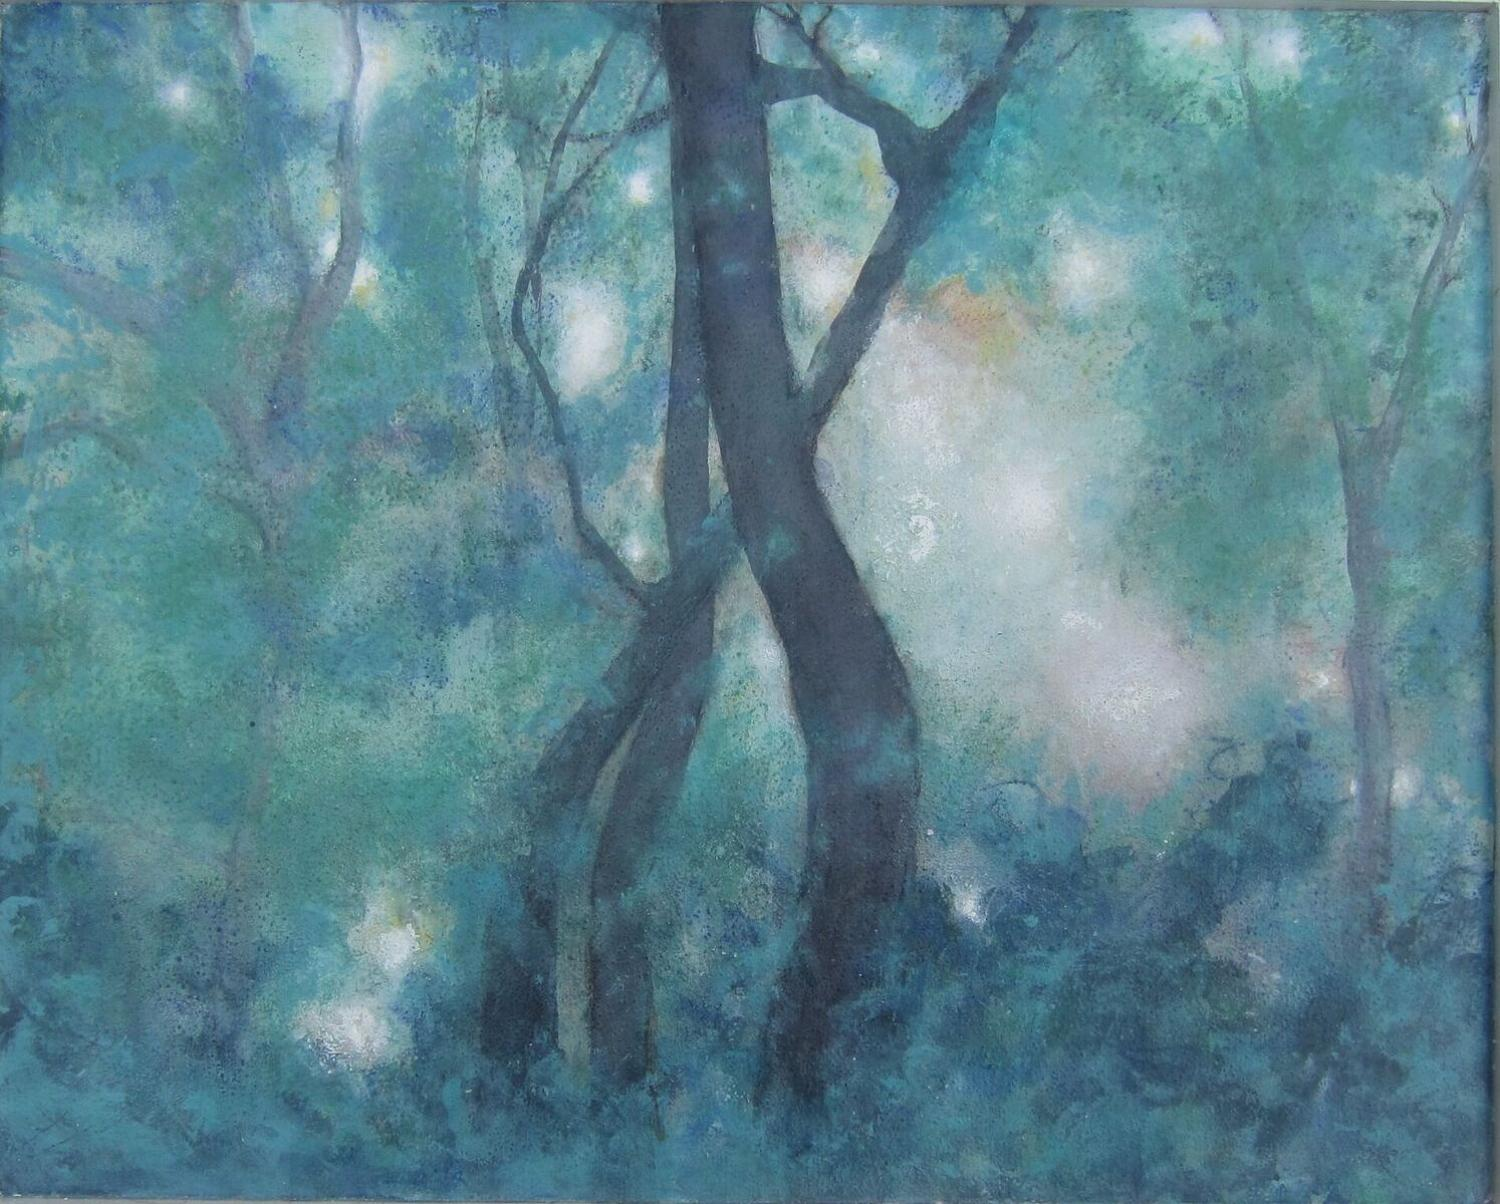 Jill Tattersall - Through the Trees